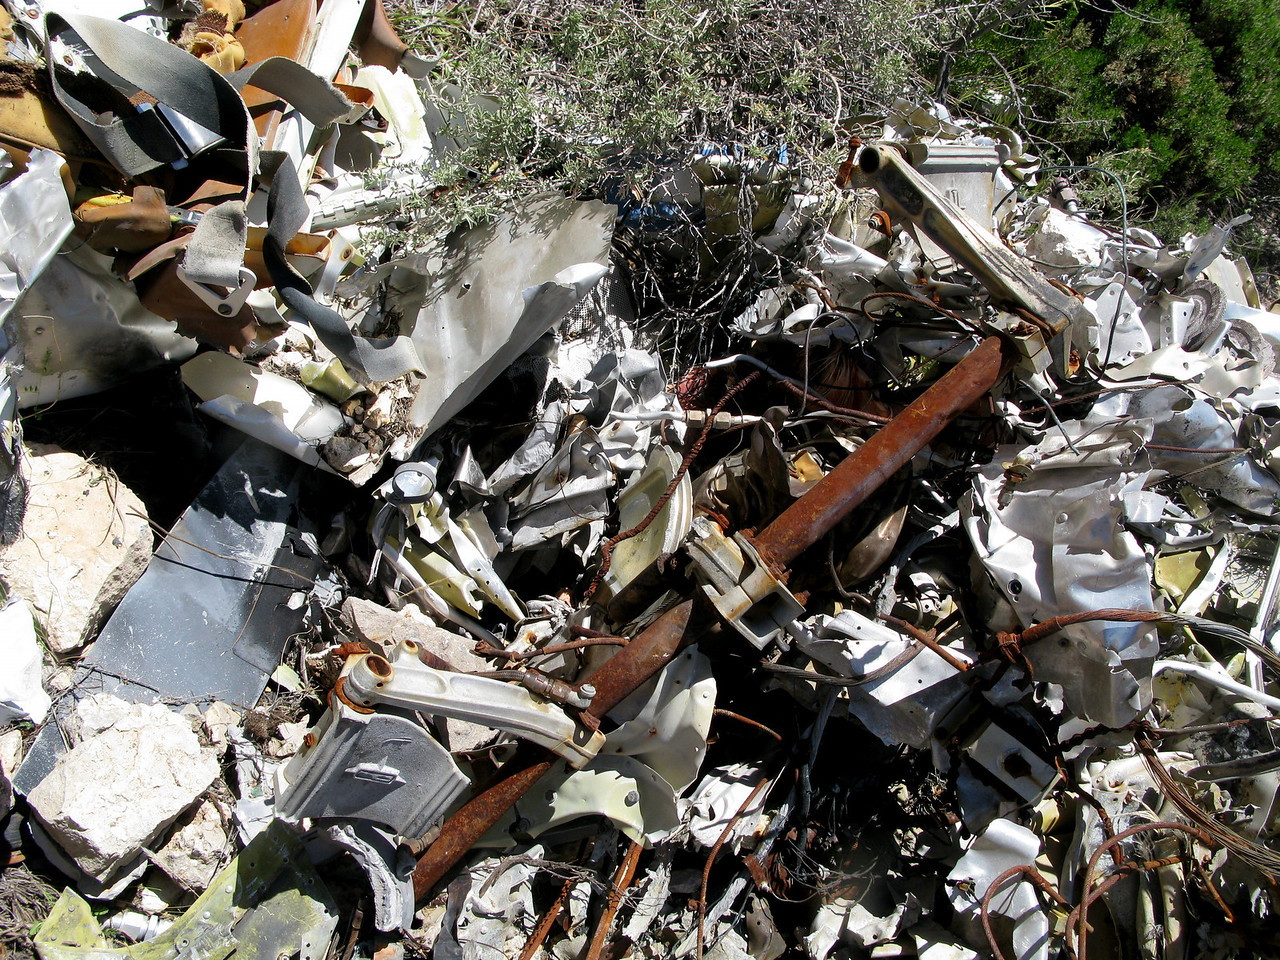 A post crash fire consumed most of the forward fuselage and passenger cabin. The rudder pedals and control armature are visible in this photo.